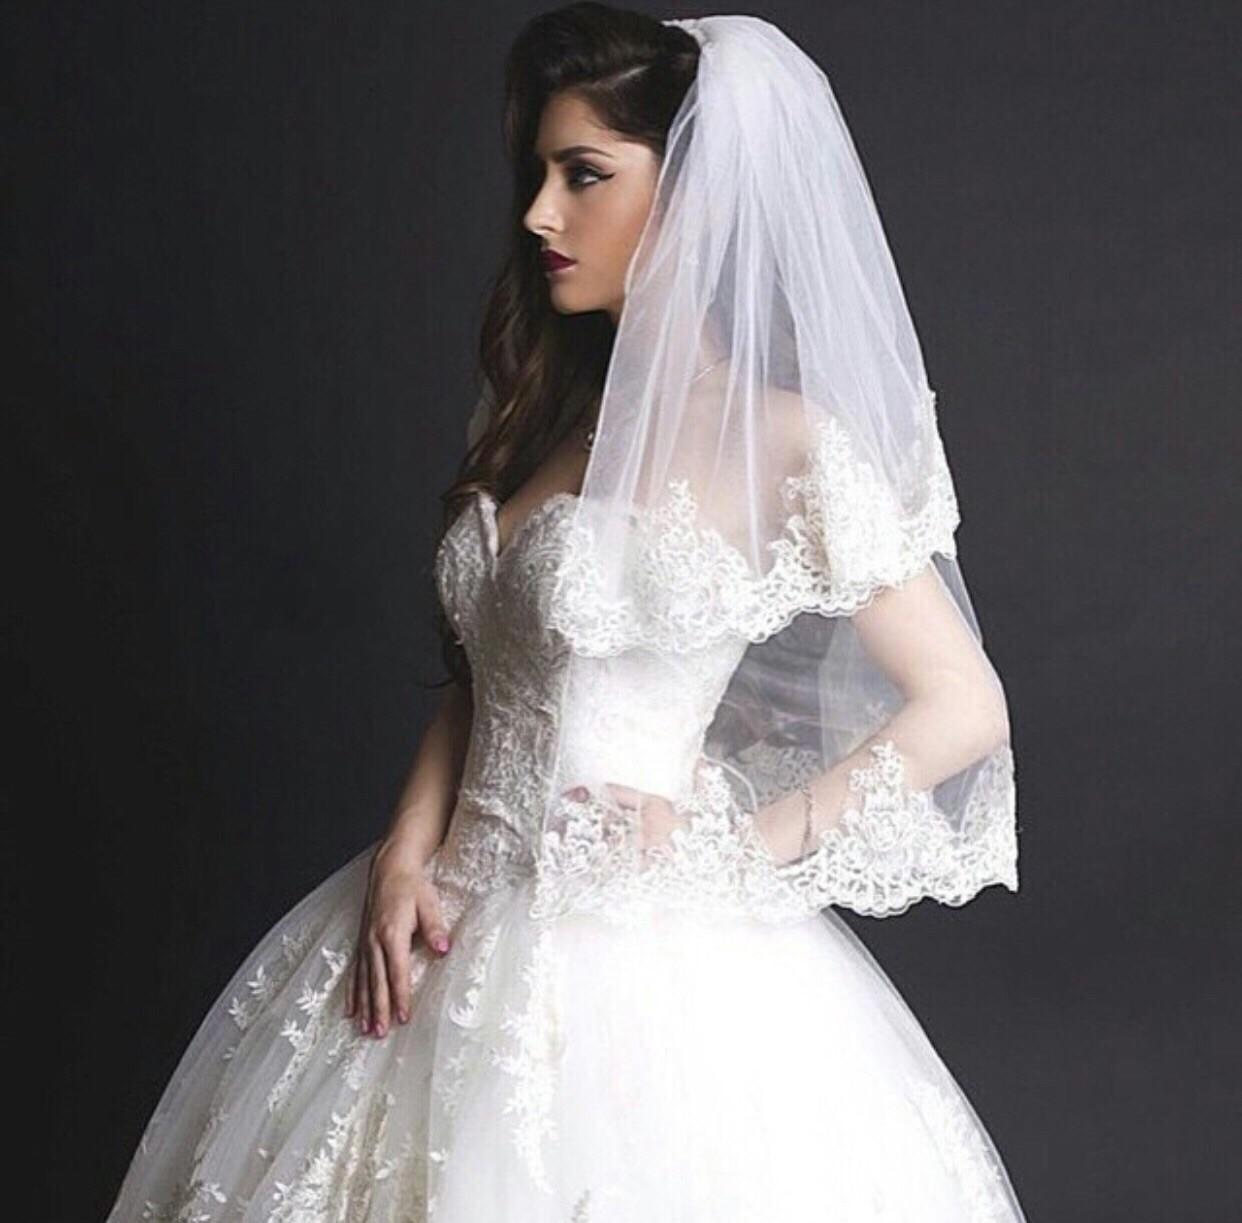 Wedding Veils With Comb 2 Tiers Short Veils With Appliques